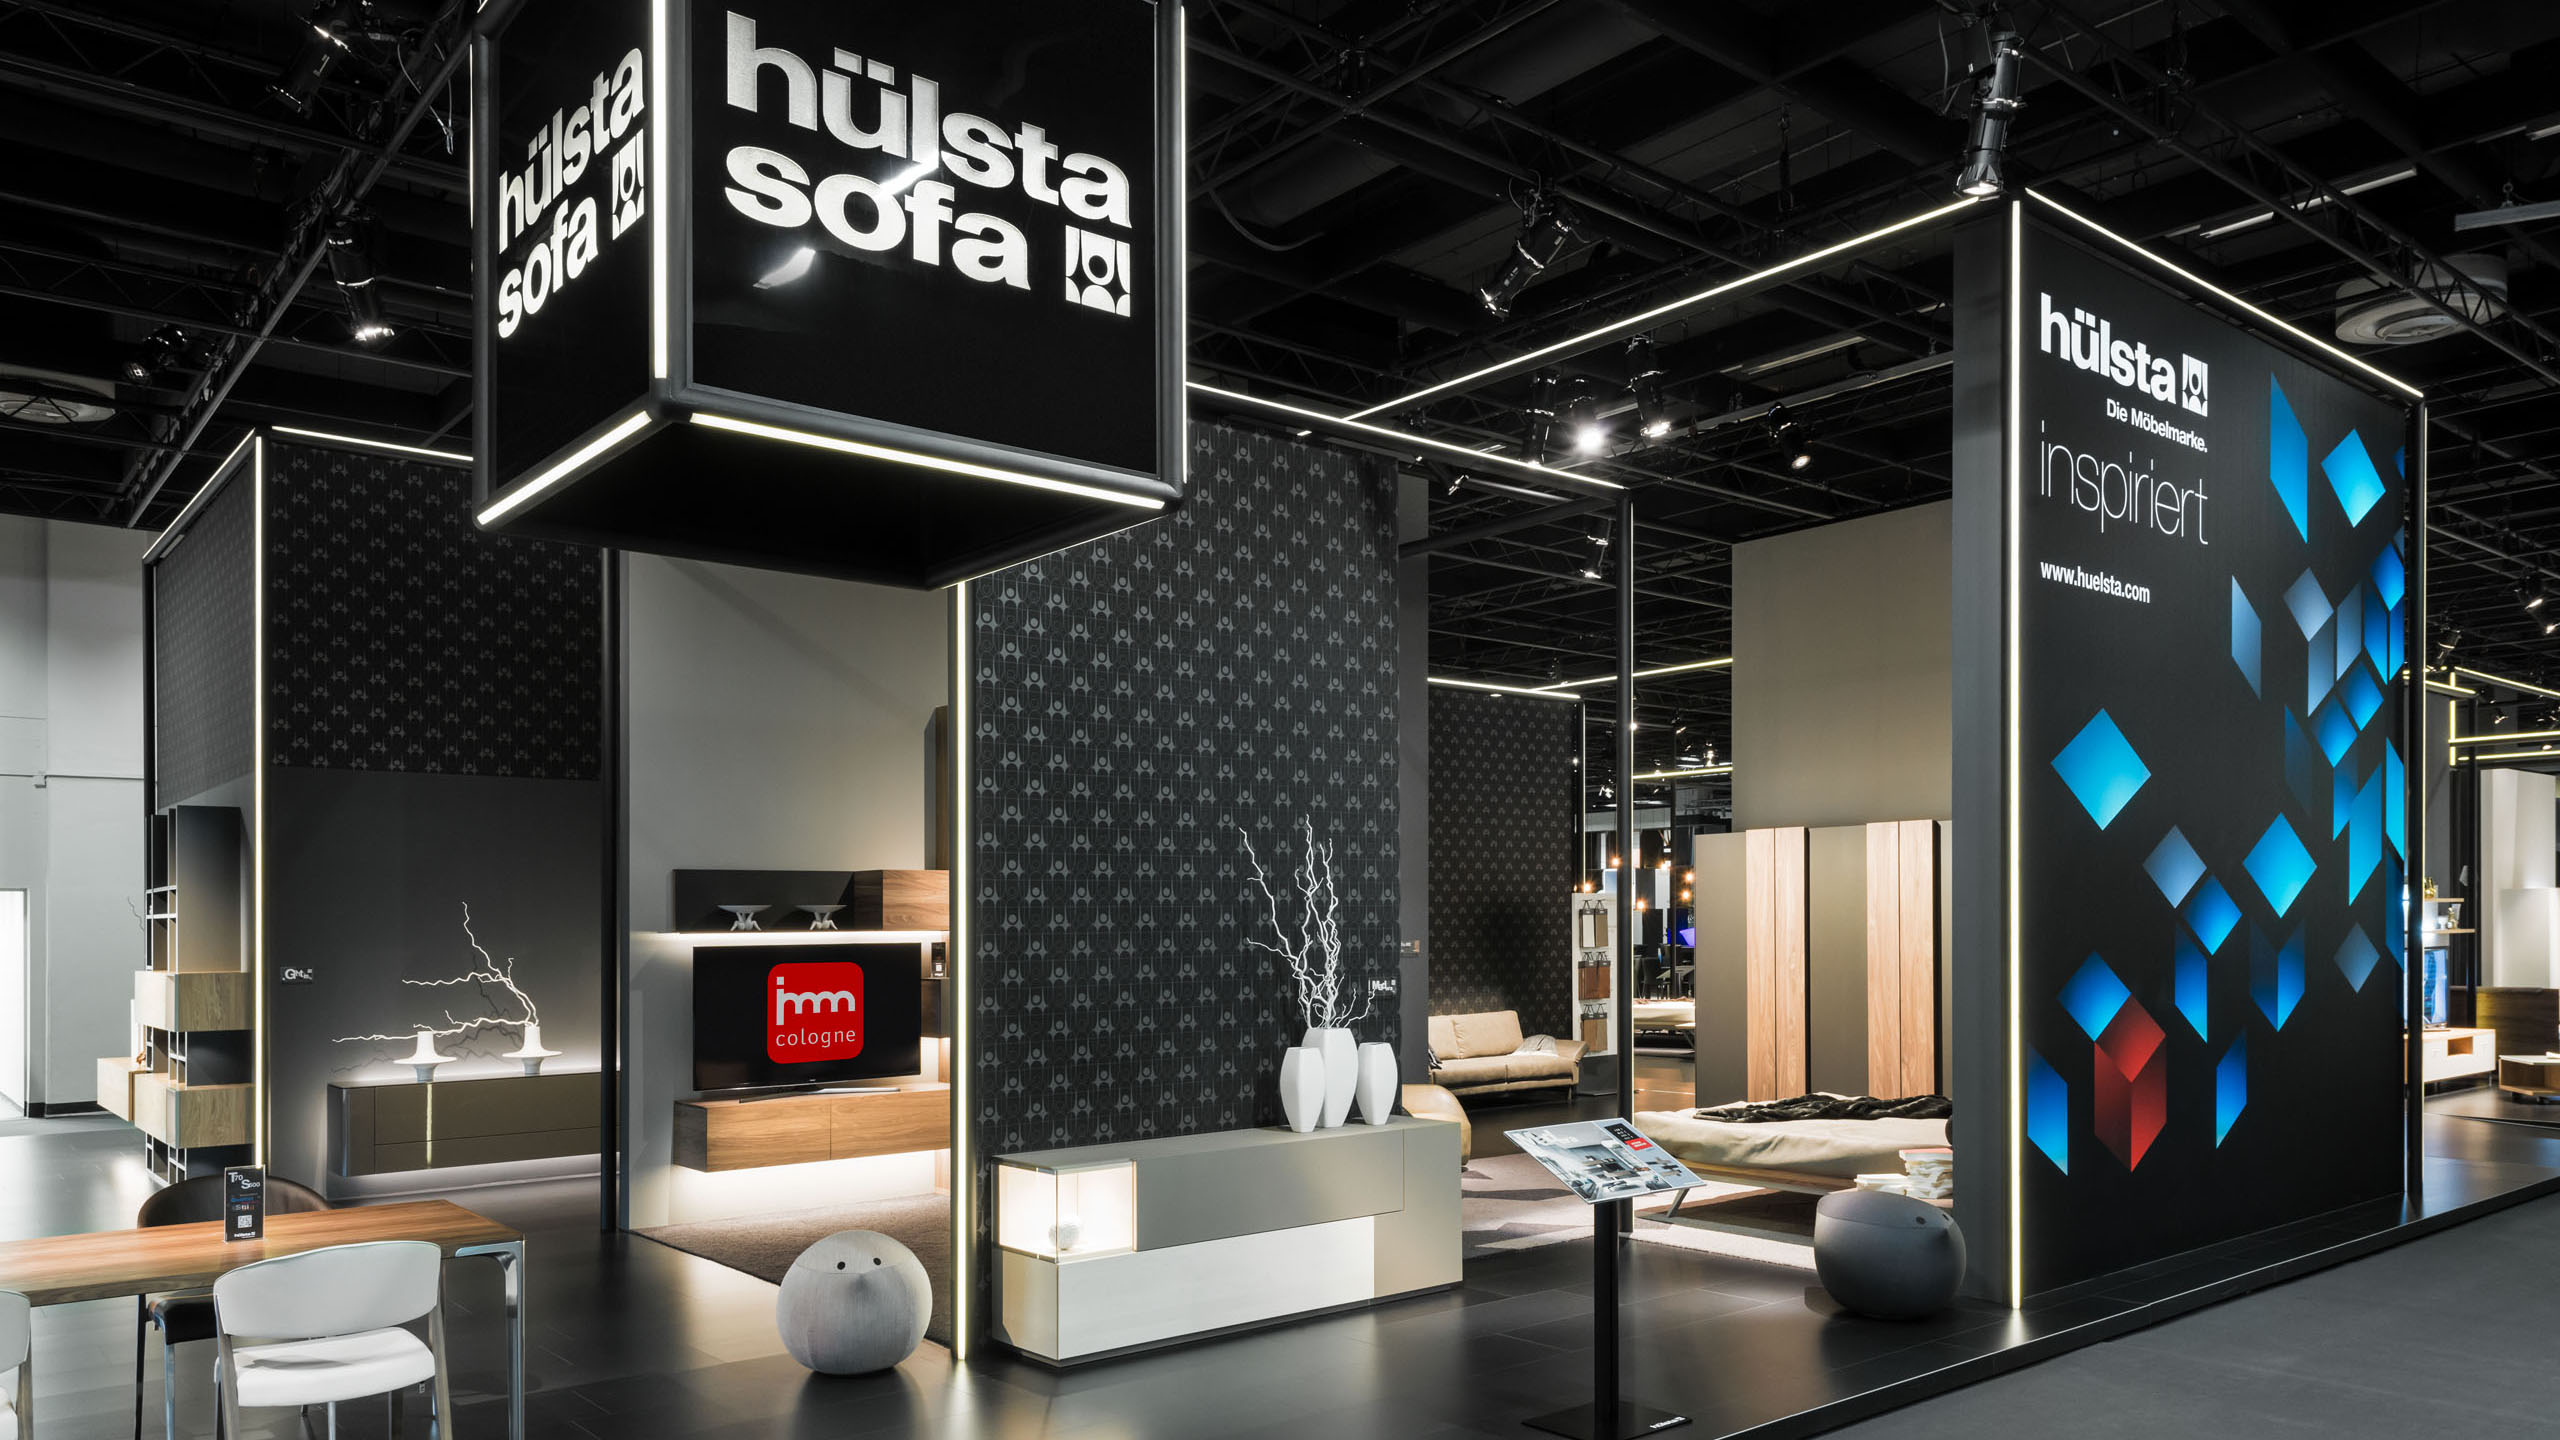 hulsta outlet awesome with hulsta outlet hlsta with hulsta outlet wardrobes with hulsta. Black Bedroom Furniture Sets. Home Design Ideas